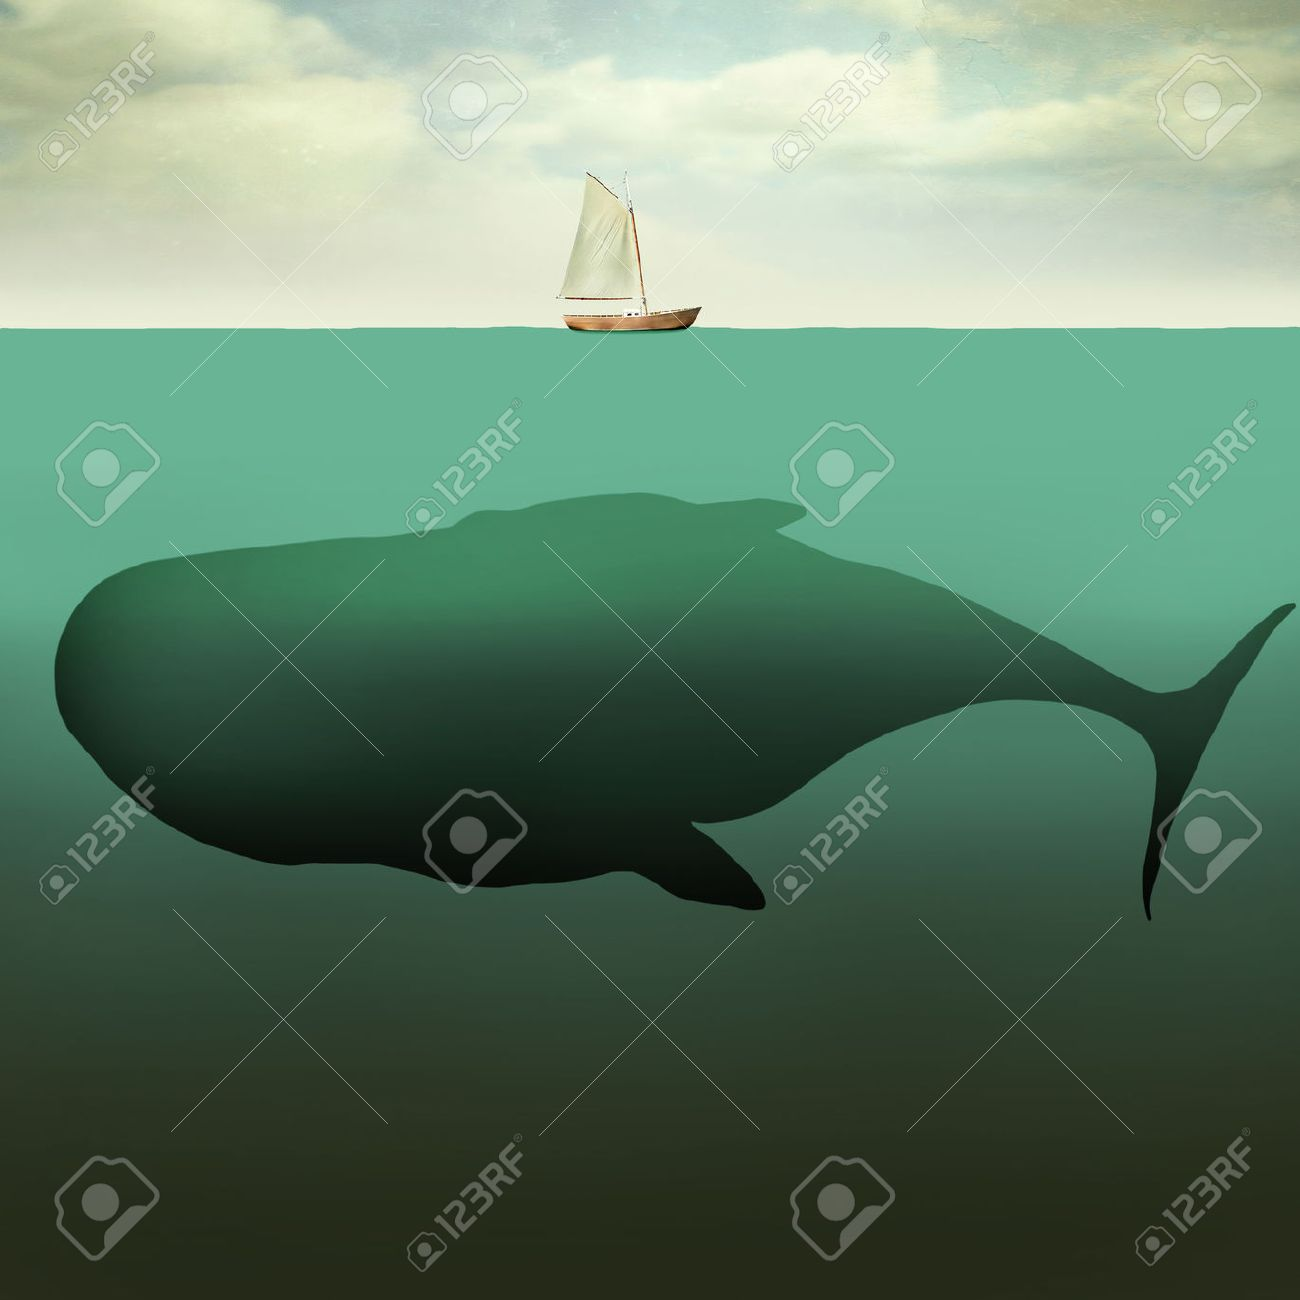 Surreal illustration of little sailboat in the middle of the ocean with the sea depth and a giant whale beneath it - 44235791